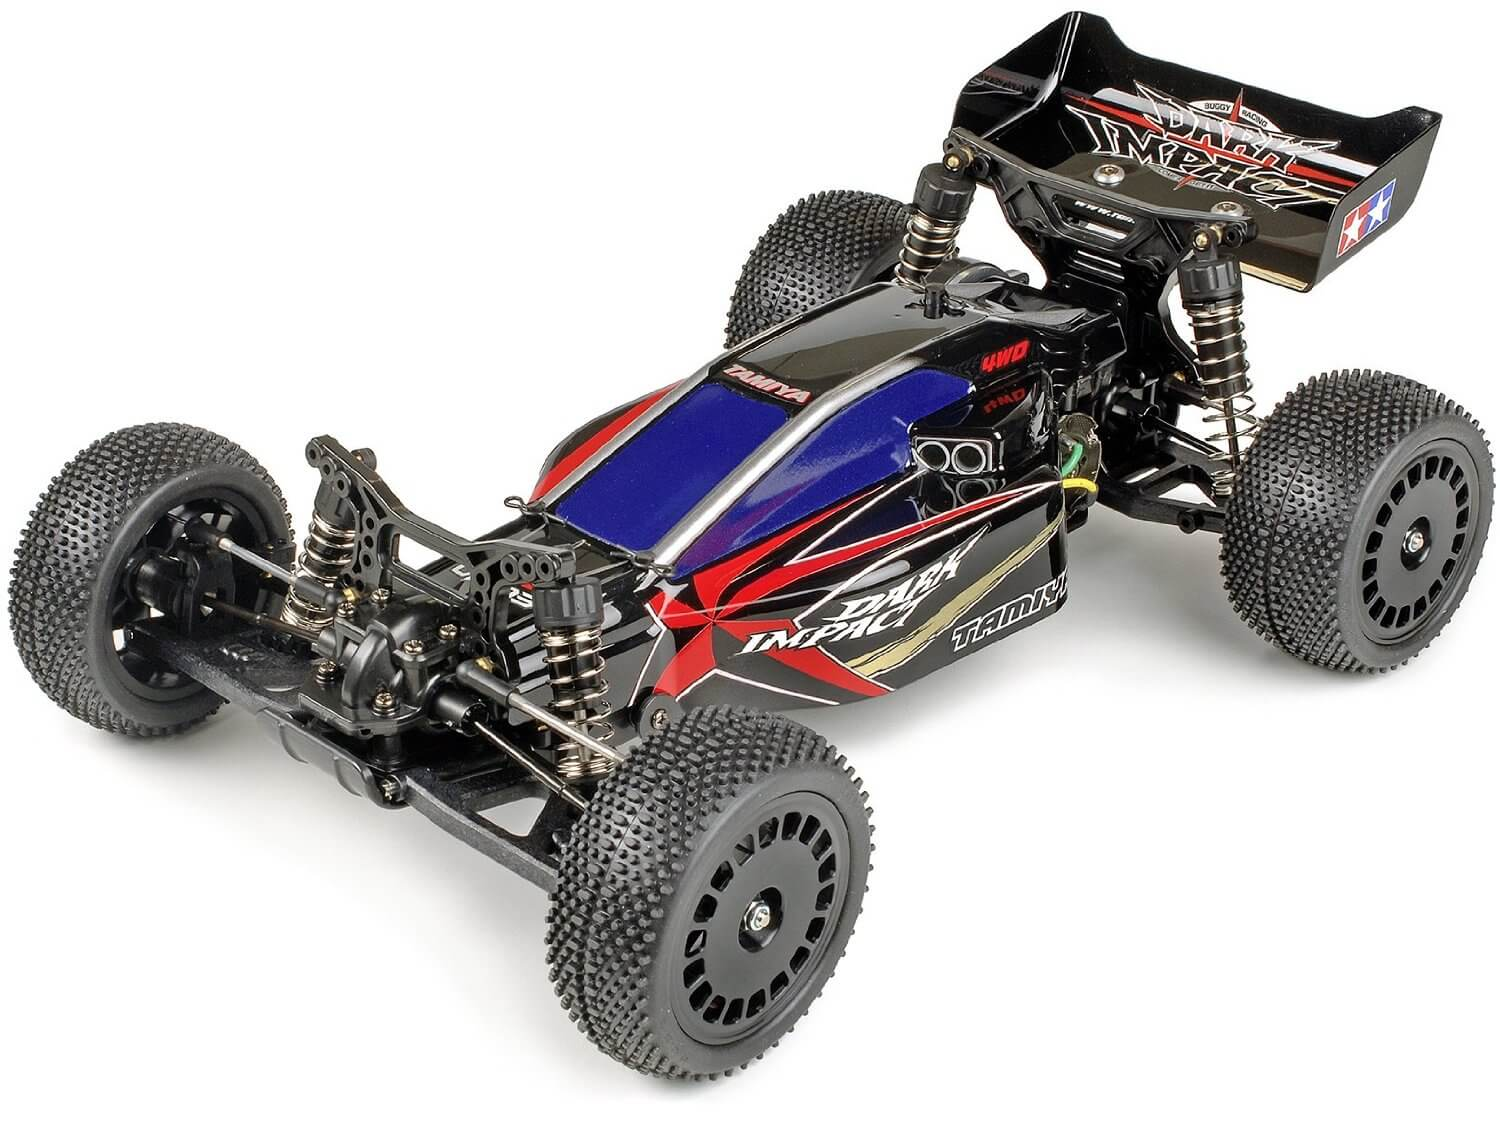 gas rc cars amazon with Tamiya Dark Impact Buggy Df03 on B0755CQ4Z8 as well 670036 in addition 10 4WD Nitro Gas Powered Racing Car Radio Remote Control Cars Toy On also Days Of Thunder besides Homebuilt Helicopter Plans.